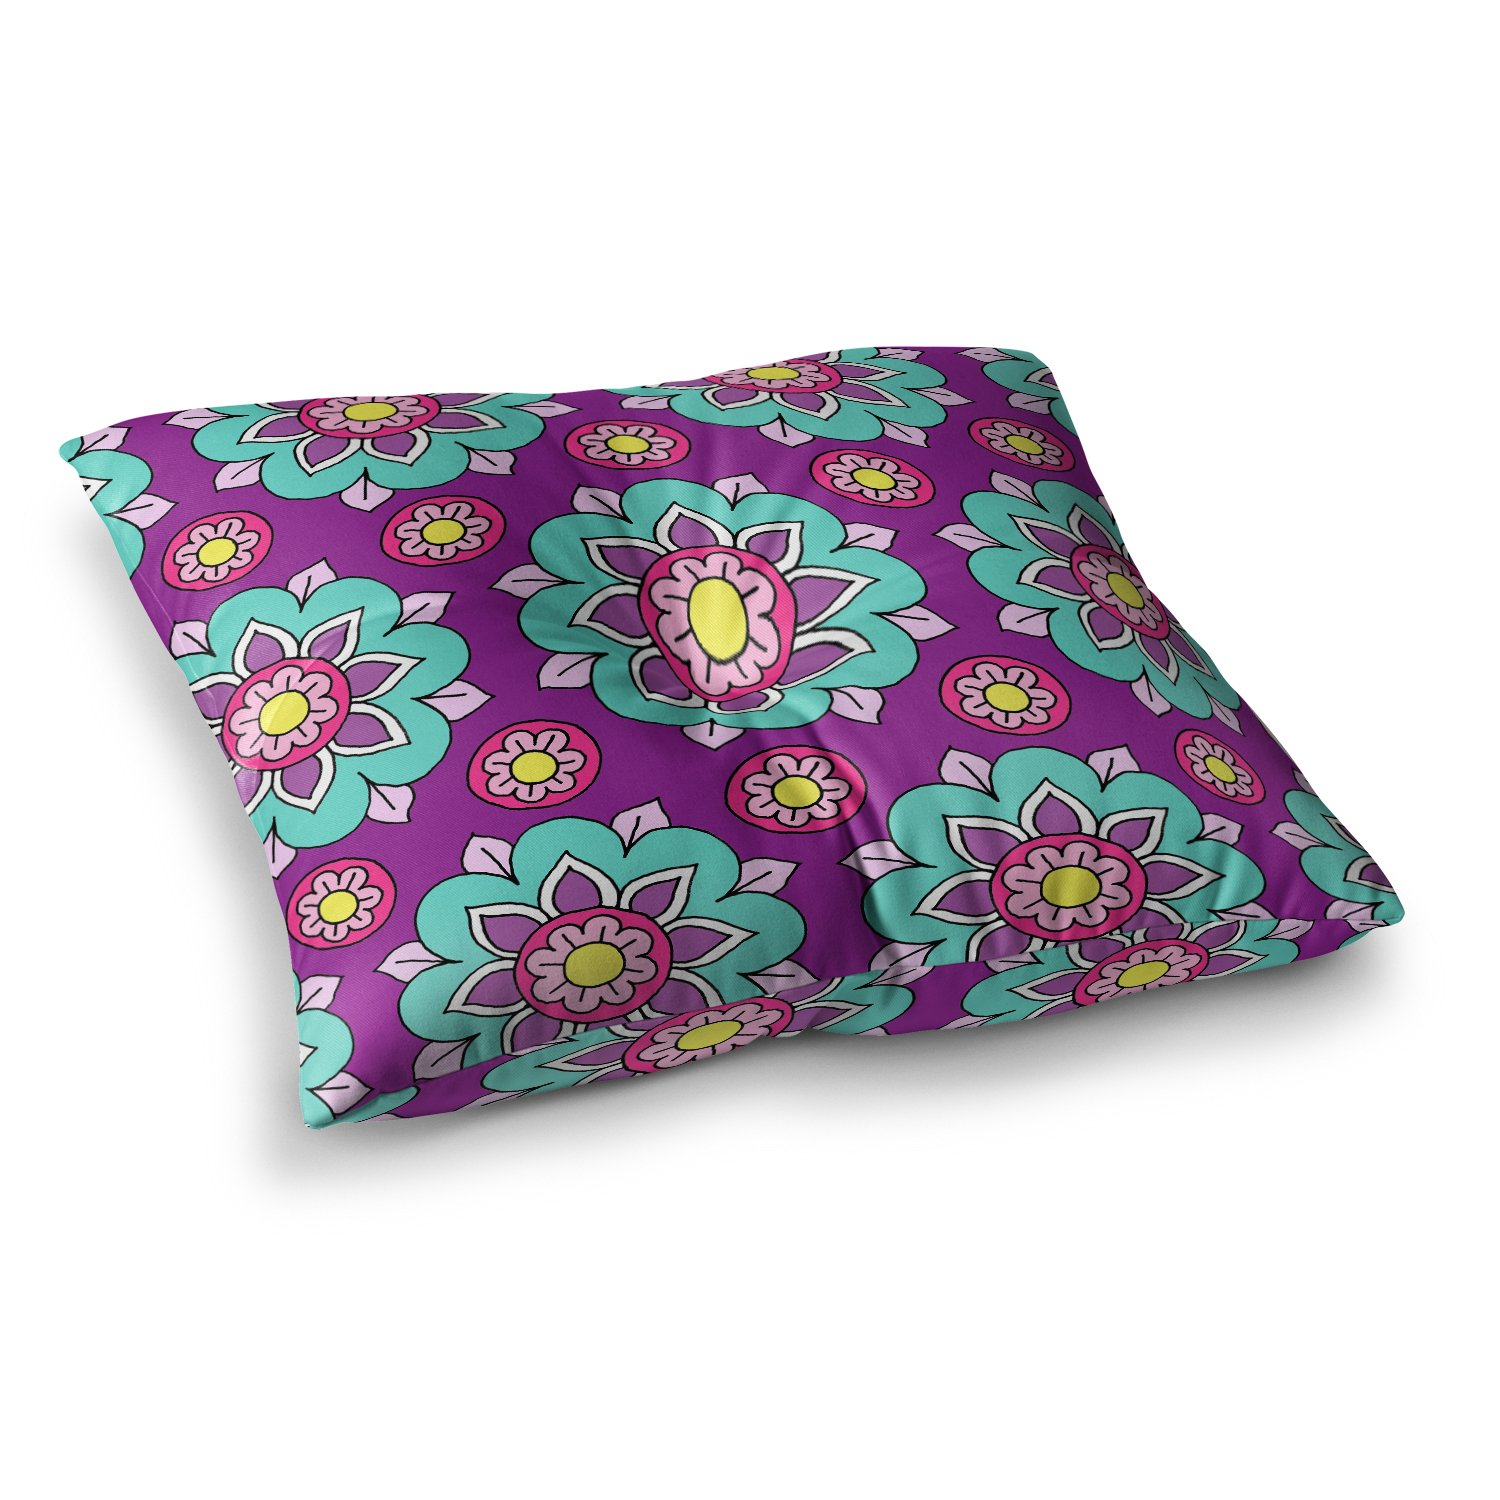 Kess InHouse Sarah Oelerich Bright Blossoms Aqua Purple 23 x 23 Square Floor Pillow